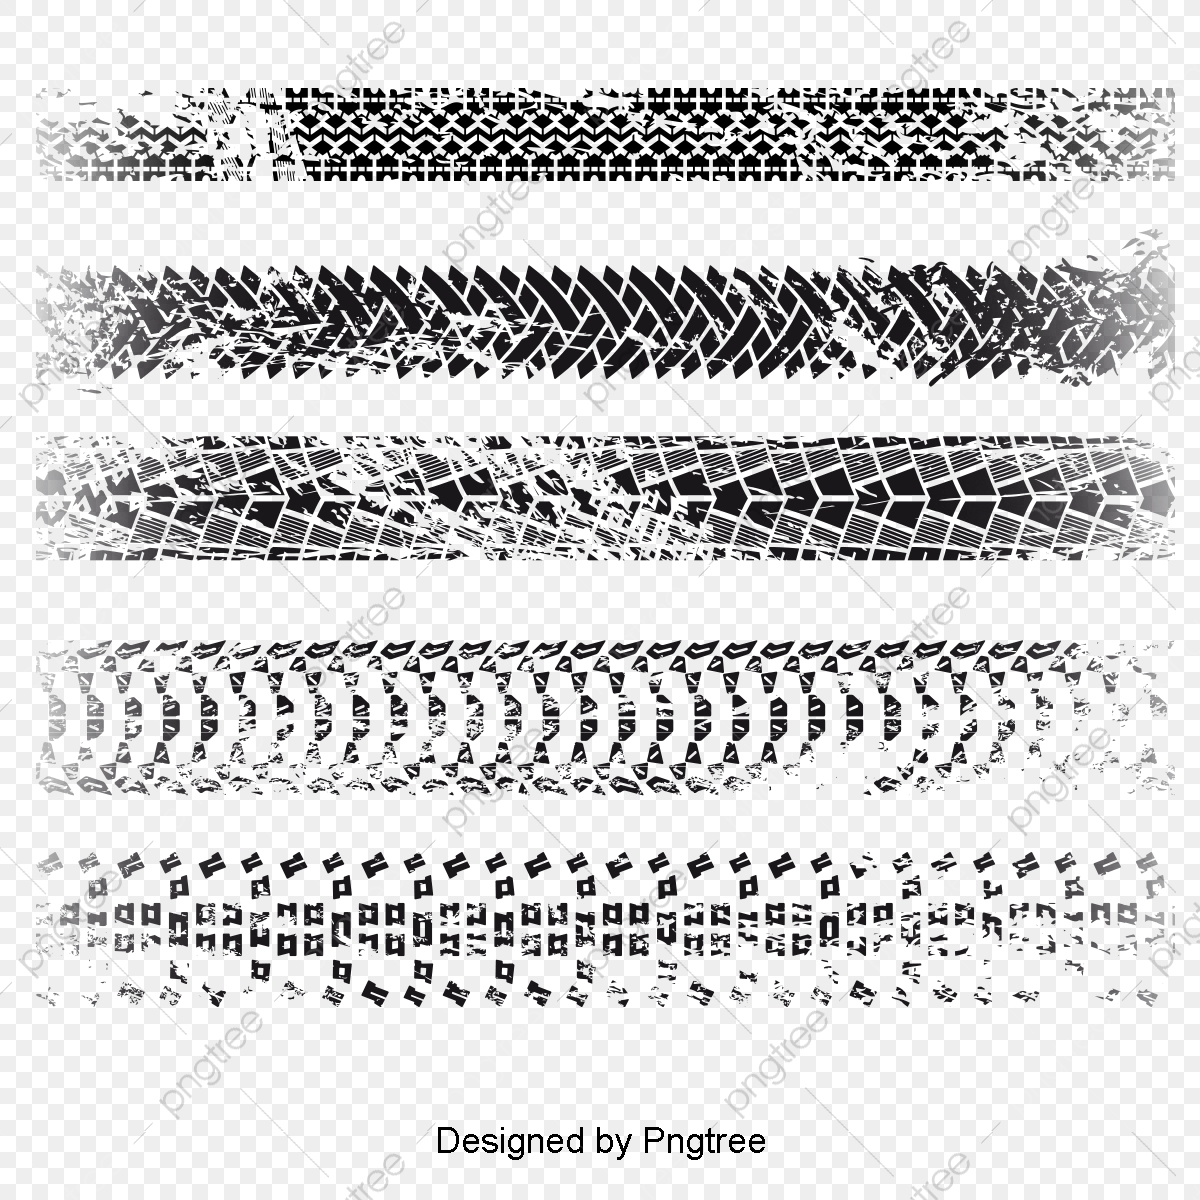 Tire Tracks Transparent Tire Marks Png Transparent Clipart Image And Psd File For Free Download